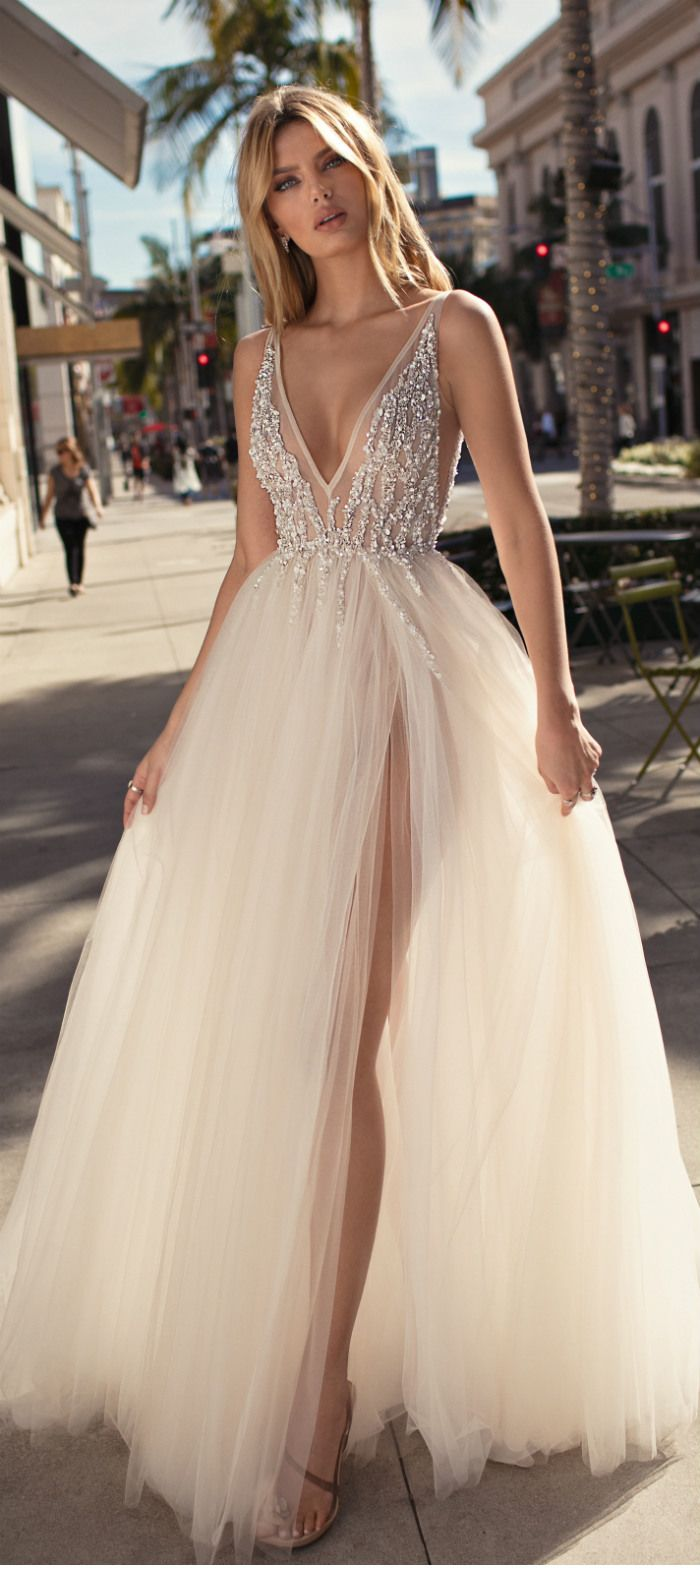 Muse By Berta Wedding Dresses 2019 City Of Angels Collection